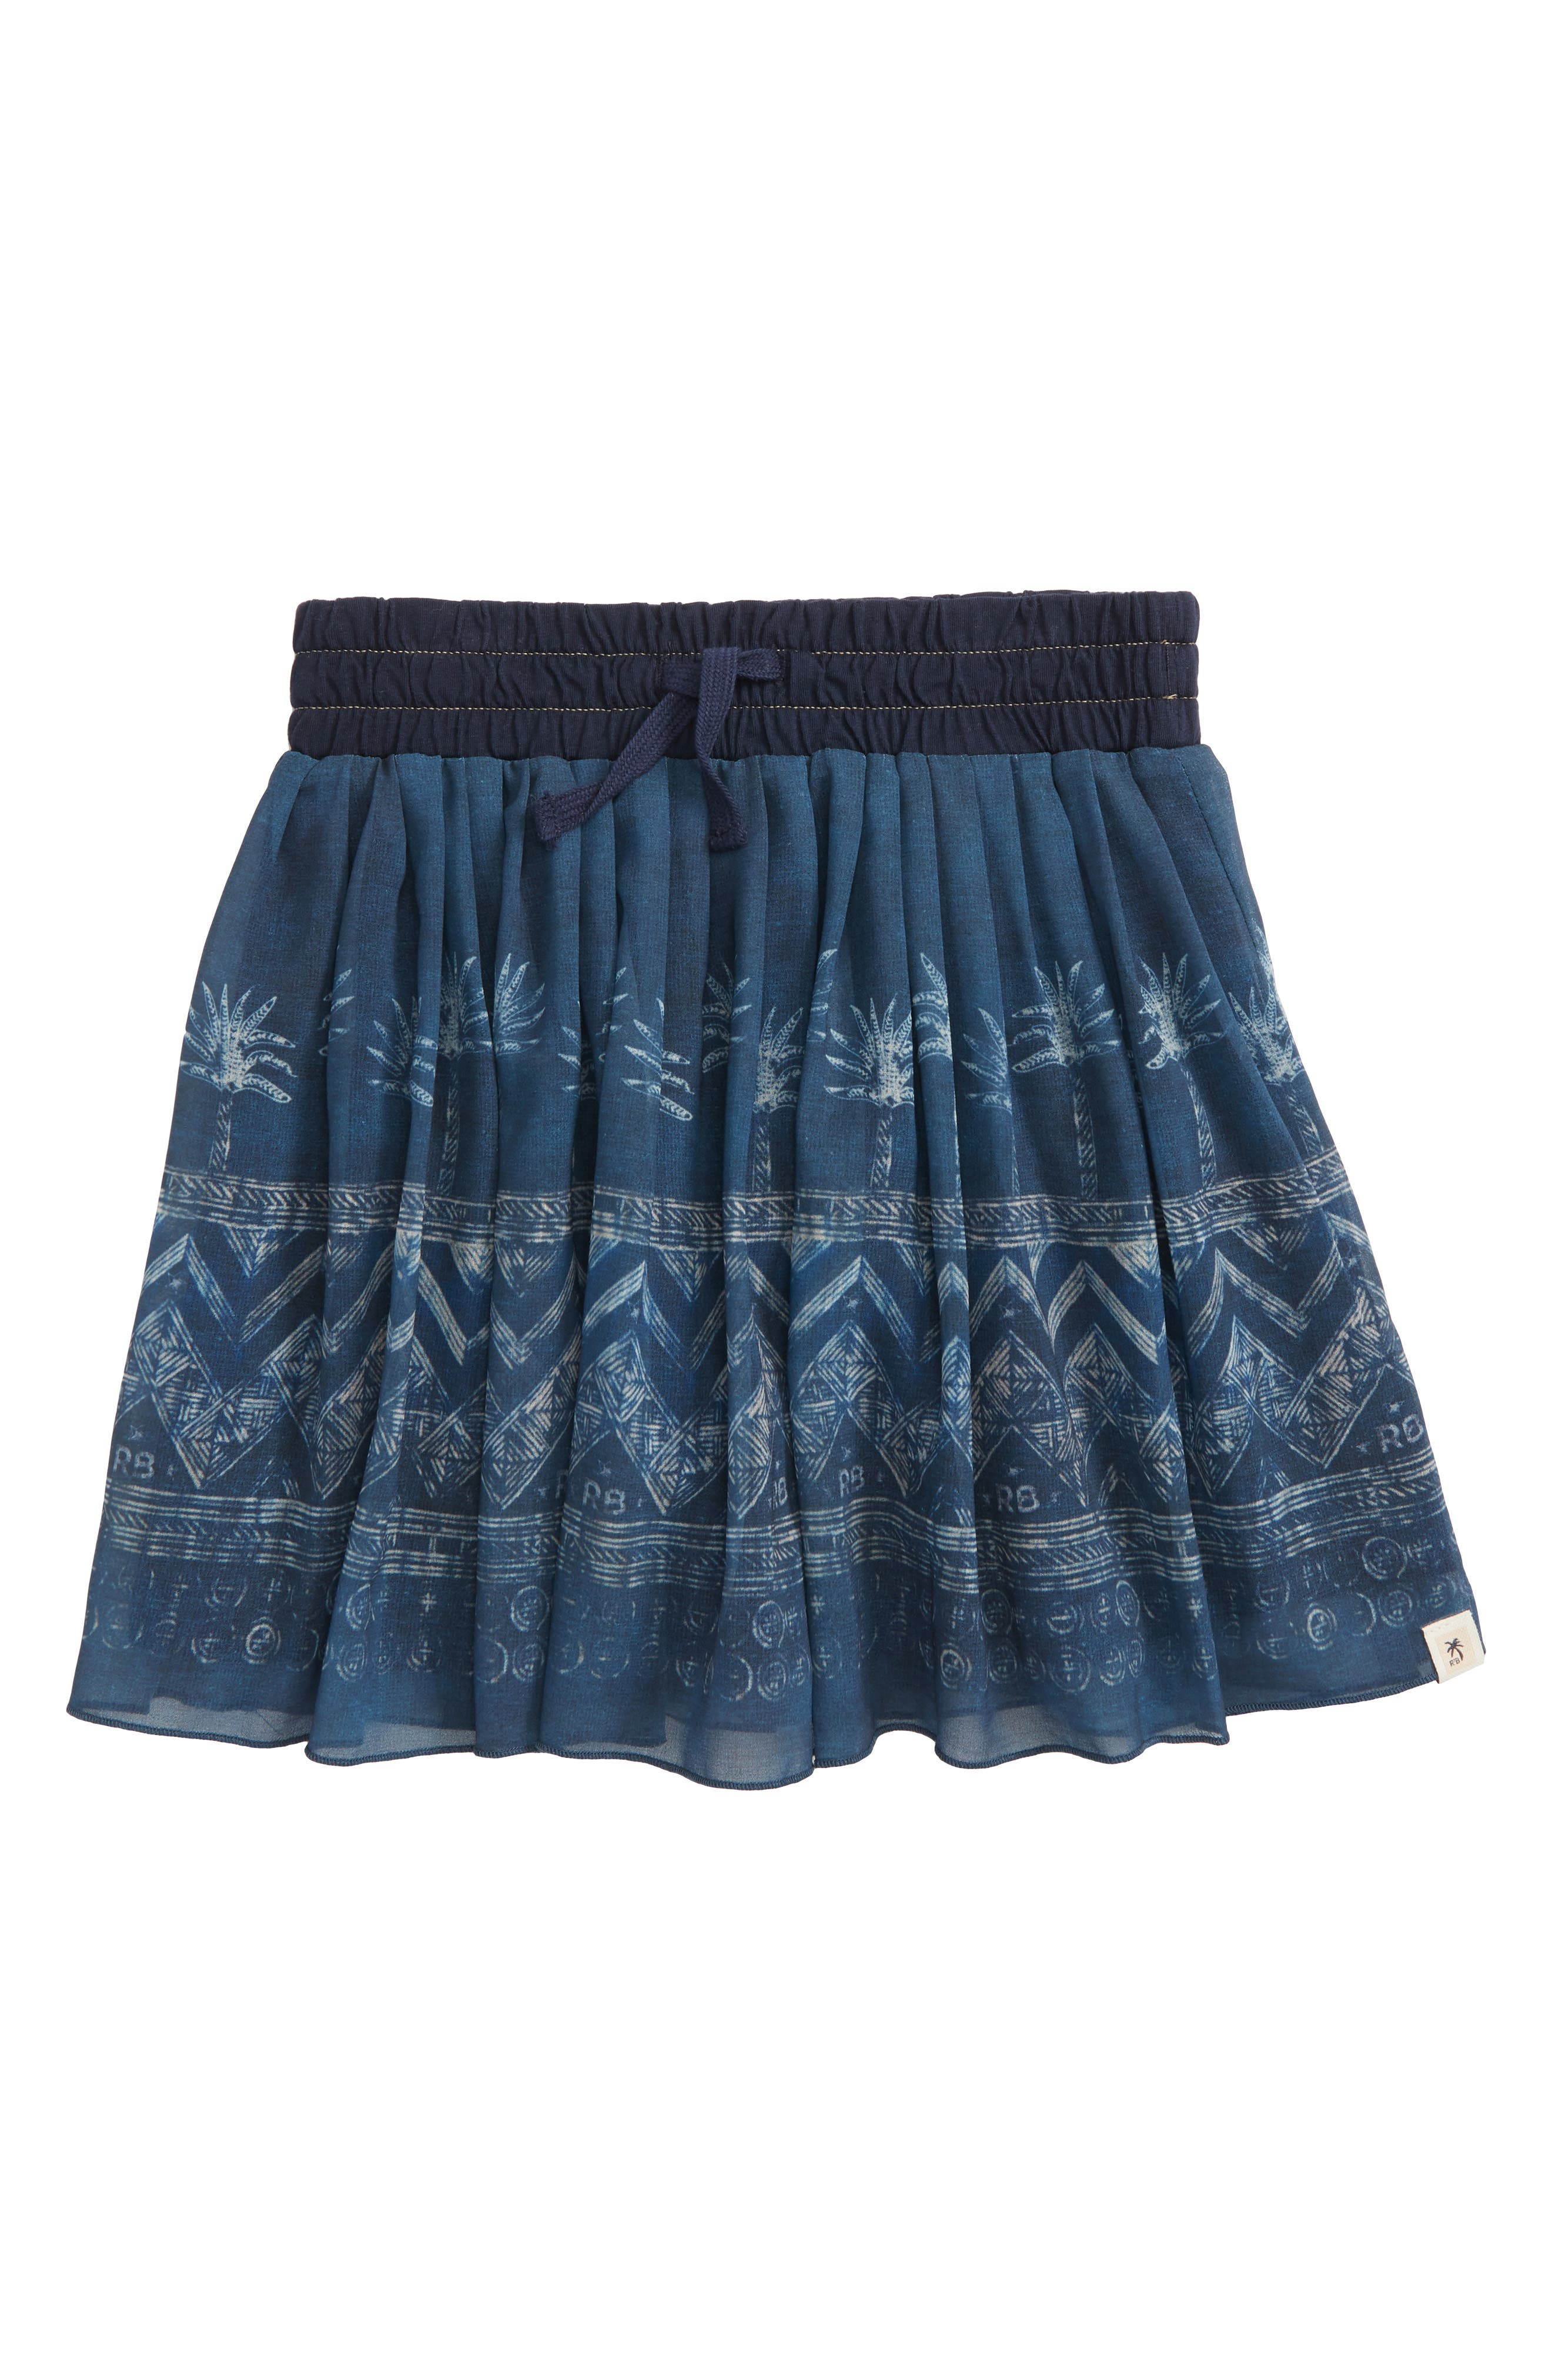 Scotch R'Belle Pleated Skirt,                             Main thumbnail 1, color,                             Navy